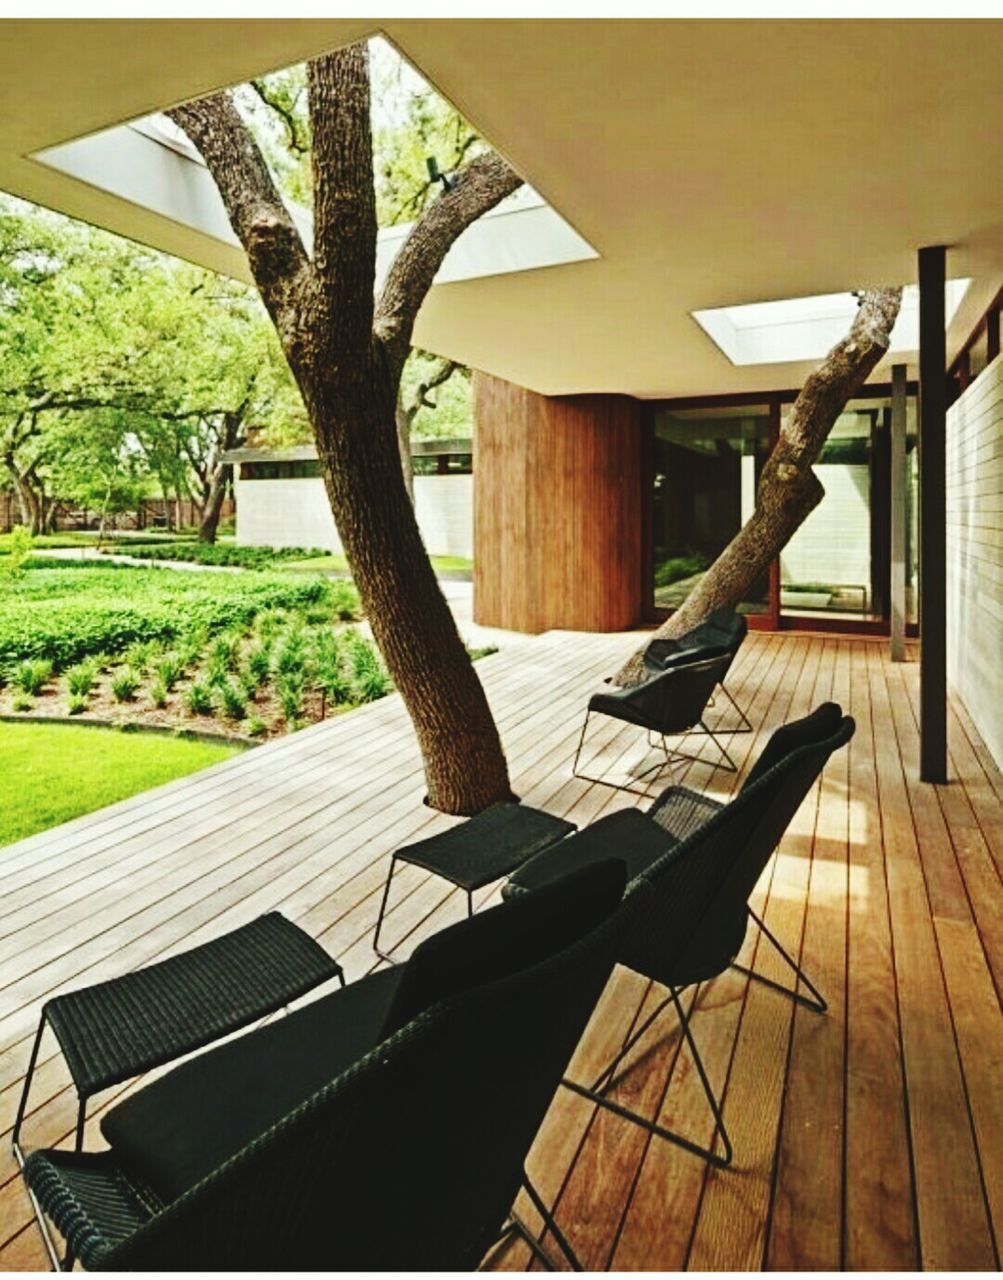 chair, no people, home interior, wood - material, tree, day, luxury, indoors, architecture, nature, home showcase interior